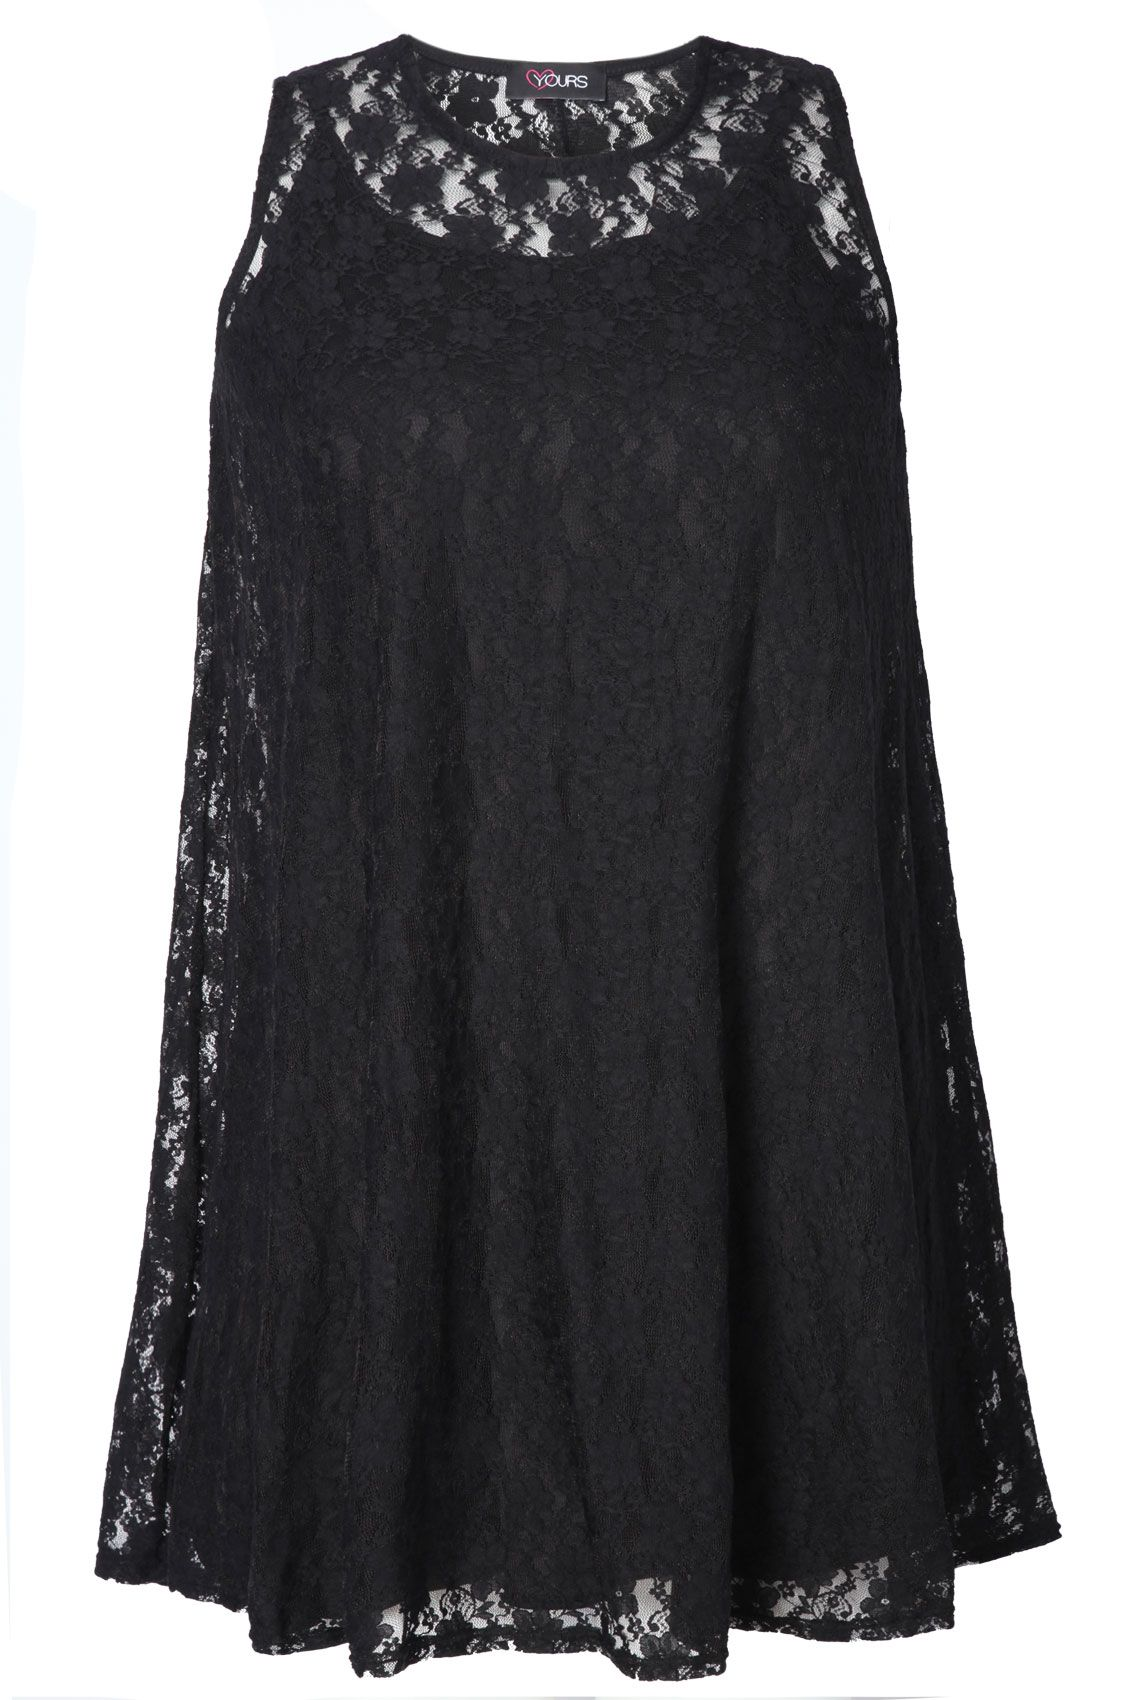 Lace dress for big size  Black Lace sleeveless Tunic With Separate Cami plus size